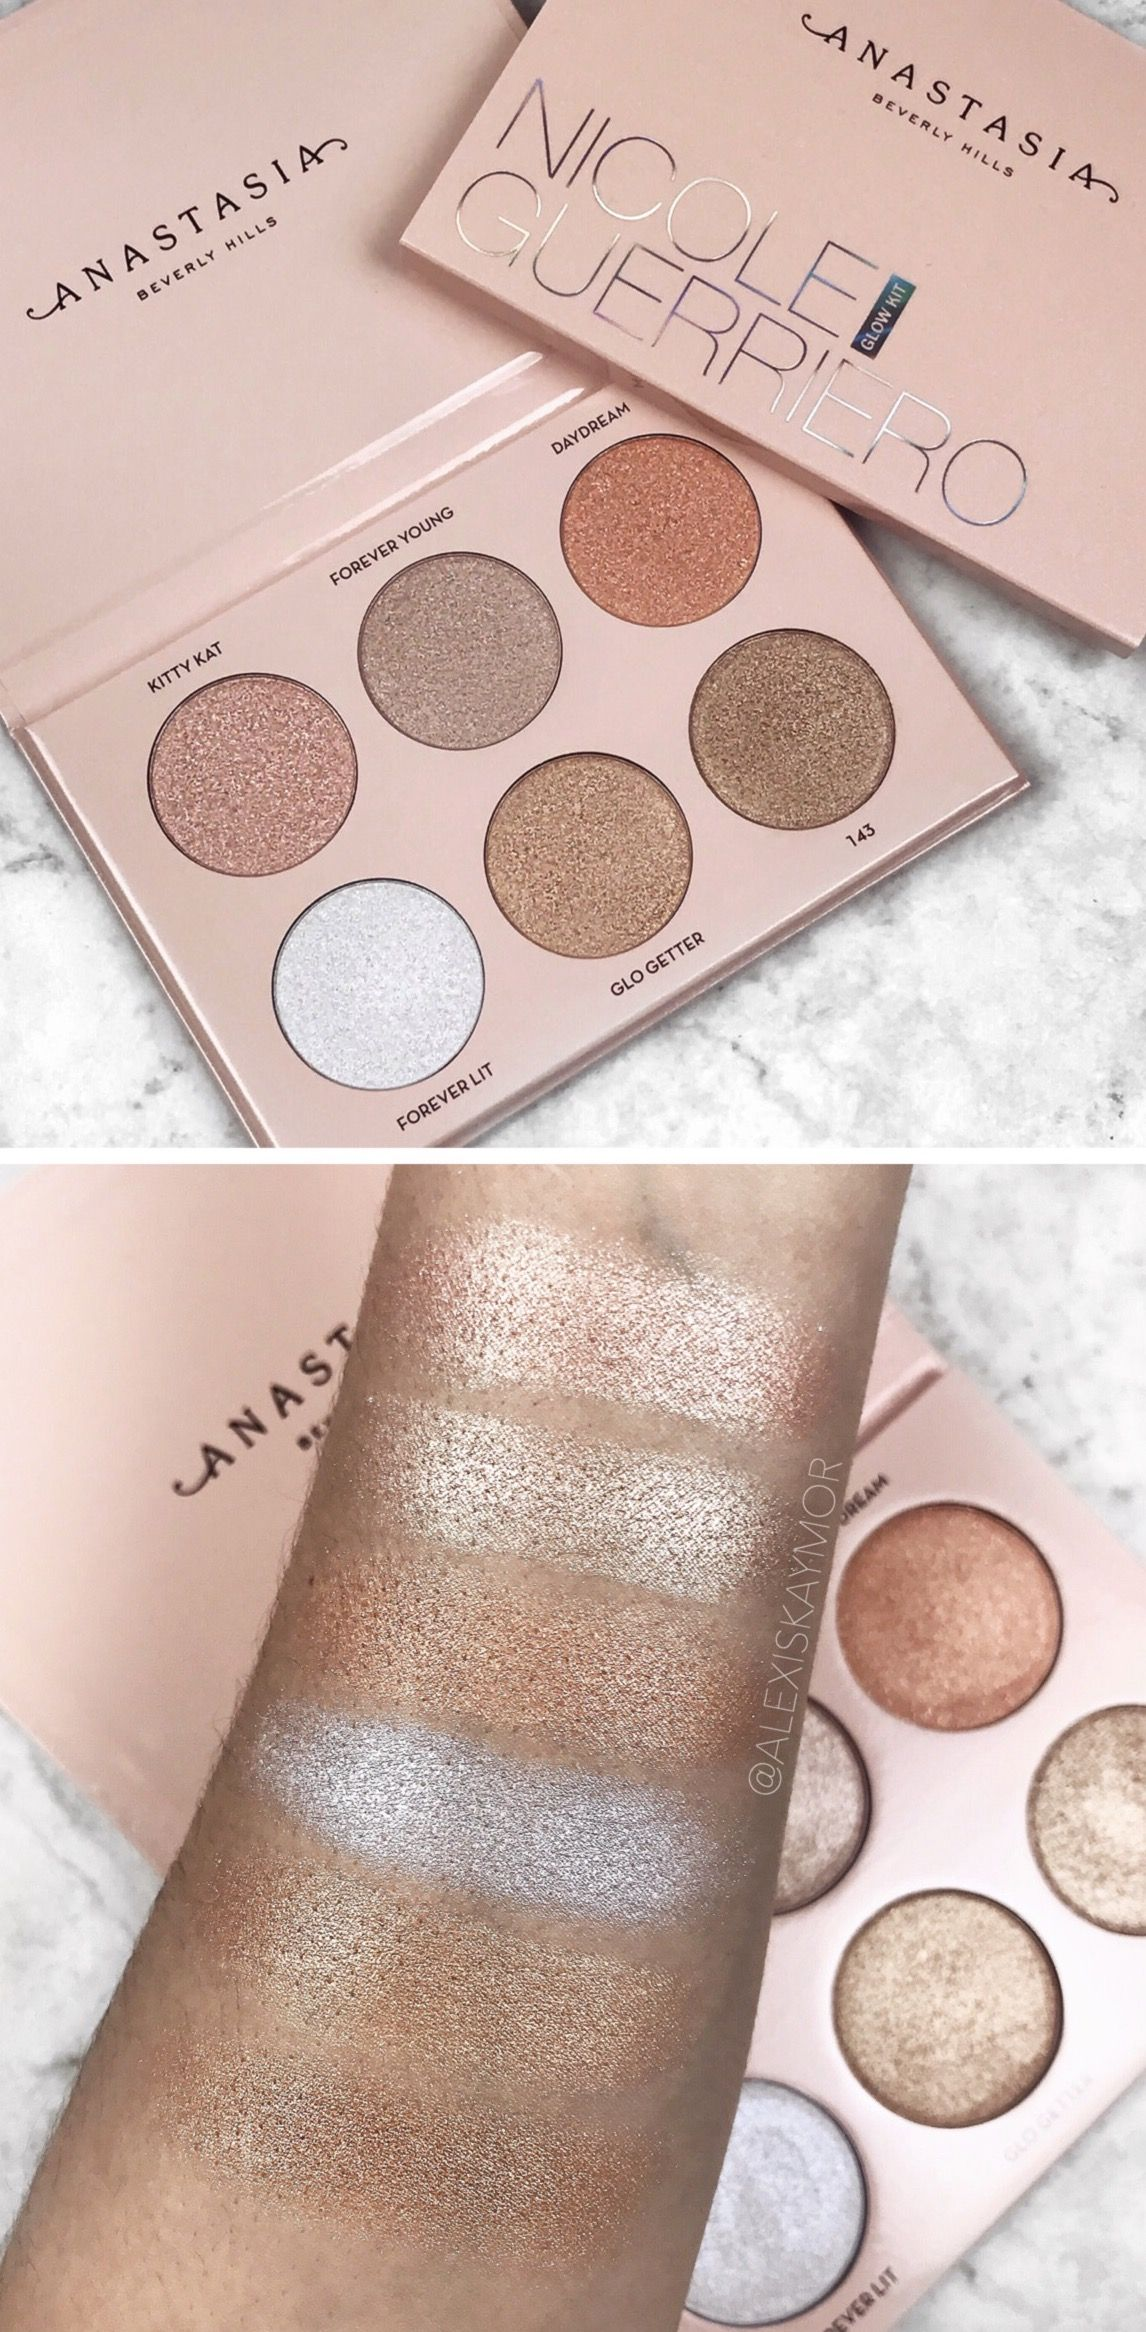 The New Nicole Guerriero Glow Kit From Anastasia Beverly Hills œ�